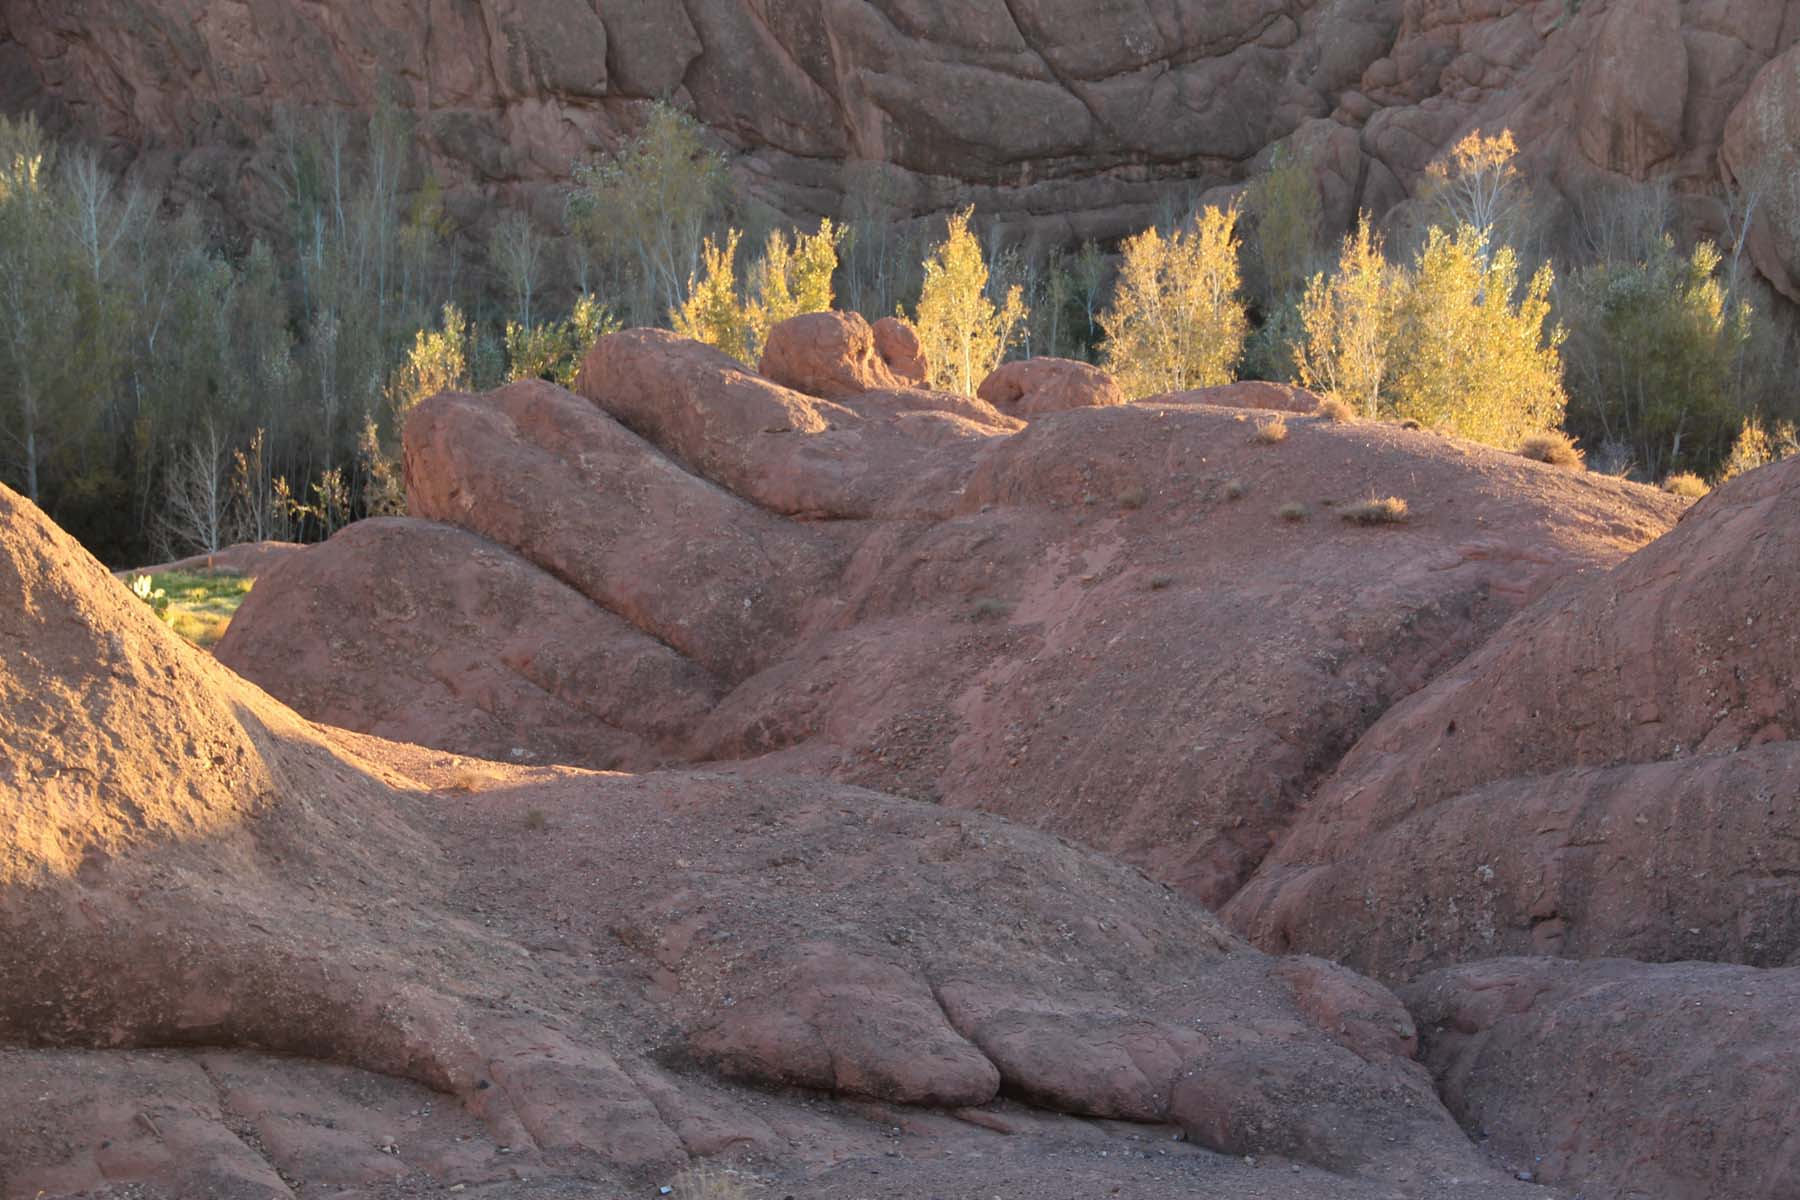 A rock of the Dades gorges that looks like a hand